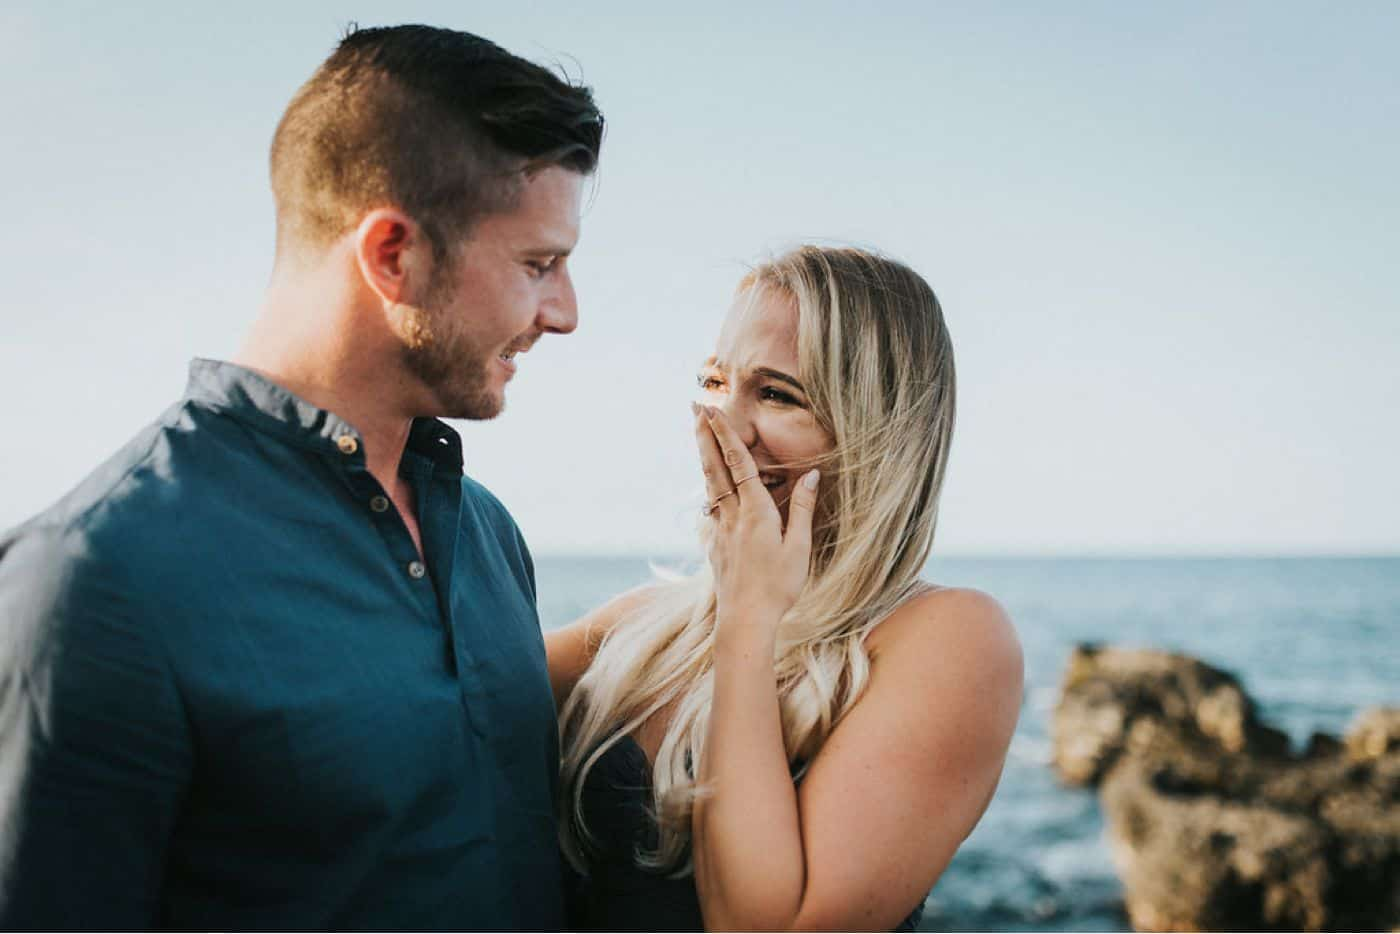 Behind the Scenes The Best Proposal Tricks With A Photographer